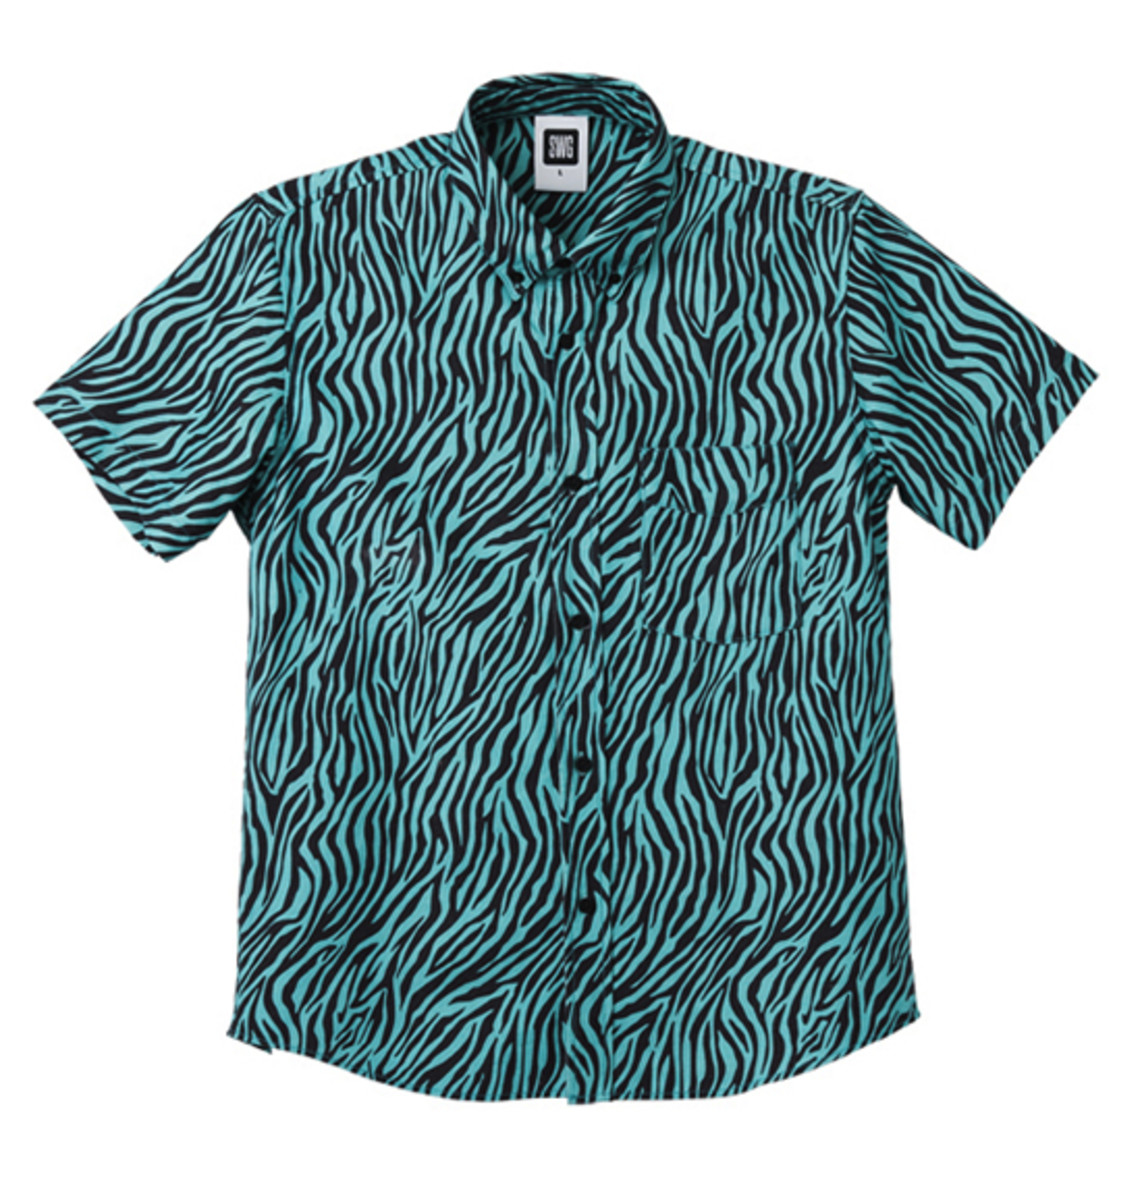 Zebra Button Down Shirt Emerald